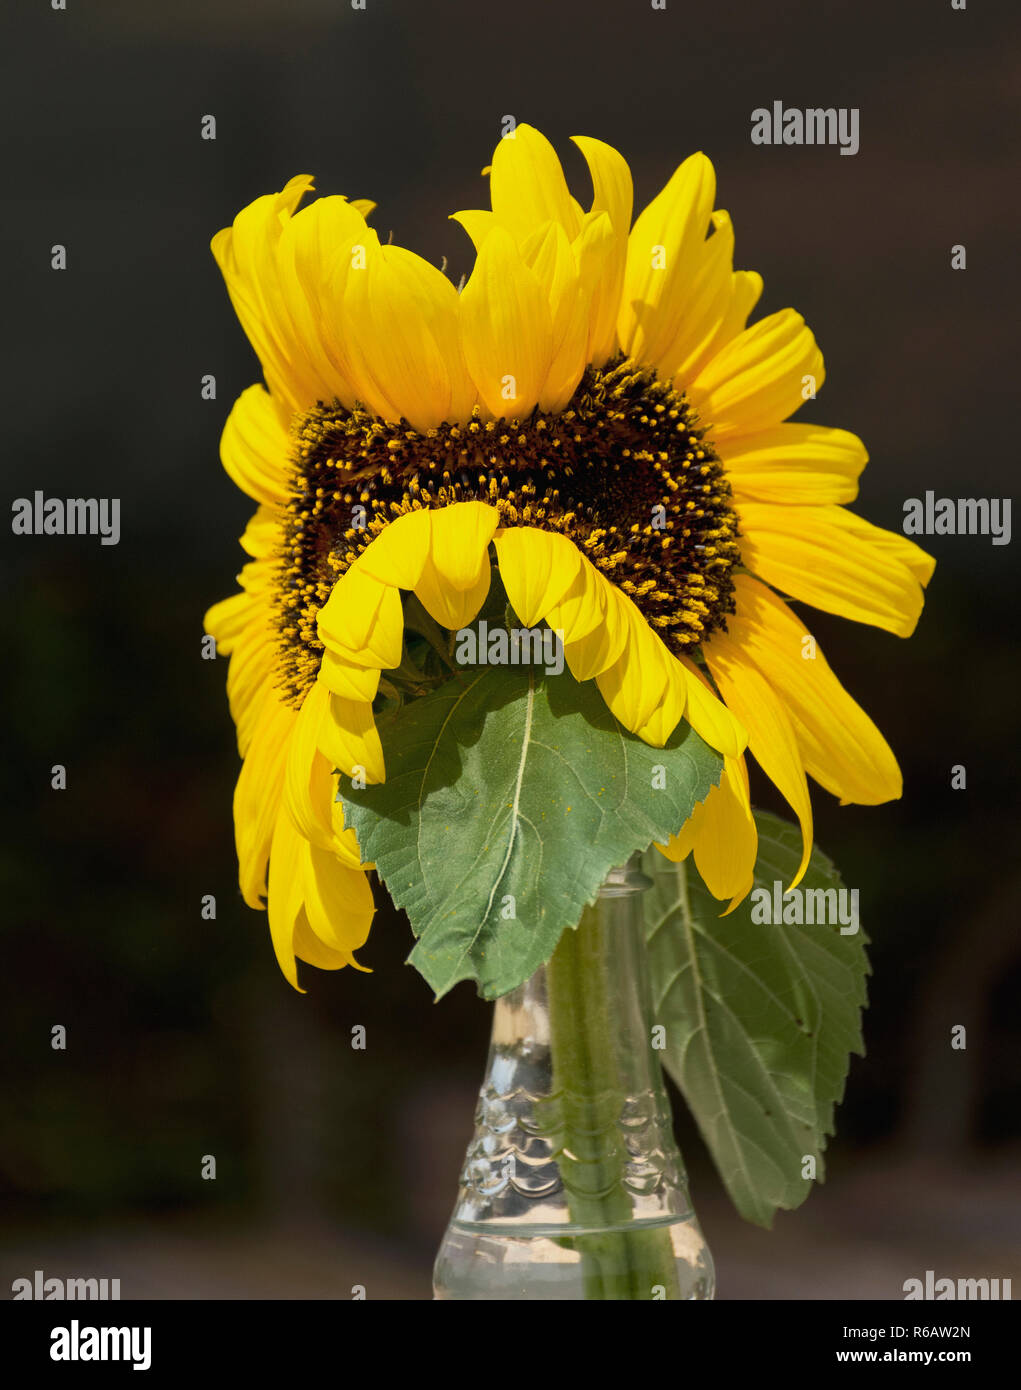 still life of two yellow sunflowers that merged into one mutant, abnormal flower on a black background - Stock Image